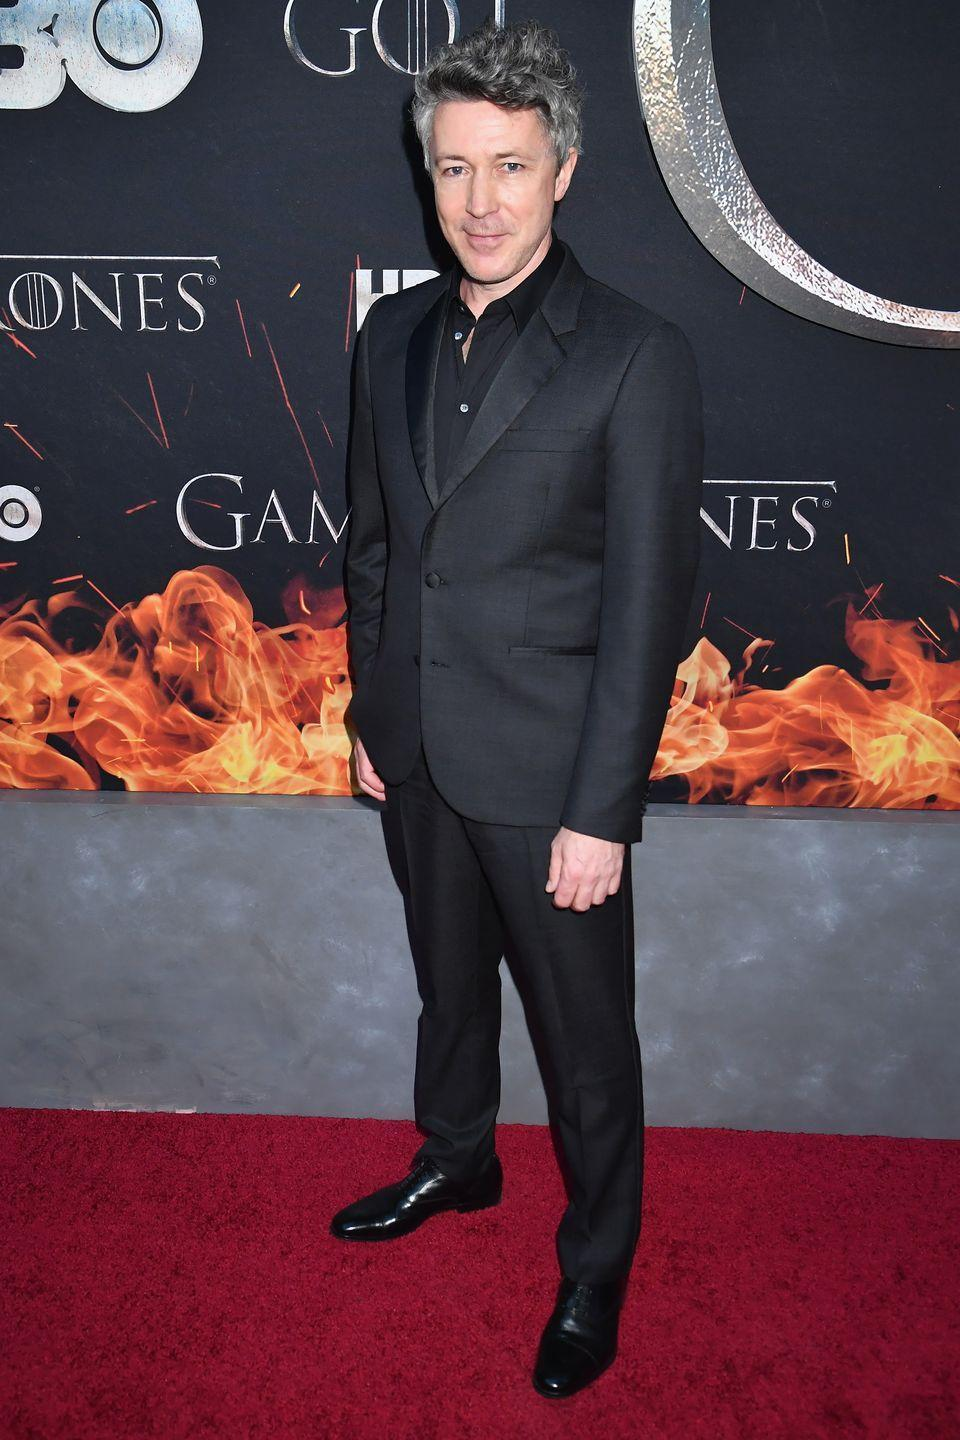 """<p>While you might have seen his recurring roles on <em>Peaky Blinders</em> and <em>Quantum Break</em>, or his small part in <em>The Dark Knight Rises</em>, Gillen is now best known as Petyr """"Littlefinger"""" Baelish from <em>Game of Thrones</em>.</p><p>He told <a href=""""https://www.denofgeek.com/us/movies/17479/aidan-gillen-interview-blitz-the-wire-game-of-thrones-and-fighting-jason-statham"""" rel=""""nofollow noopener"""" target=""""_blank"""" data-ylk=""""slk:Den of Geek"""" class=""""link rapid-noclick-resp"""">Den of Geek</a> of <em>The Wire</em>, """"It was definitely the show of a lifetime to be in—people have gone on about it so much, but it does live up to its reputation, thankfully. And I loved the part, but I don't think it's the role of my lifetime, no. I was part of an ensemble, and happy with that, but I've played more involved roles, and expect to in the future.""""</p>"""